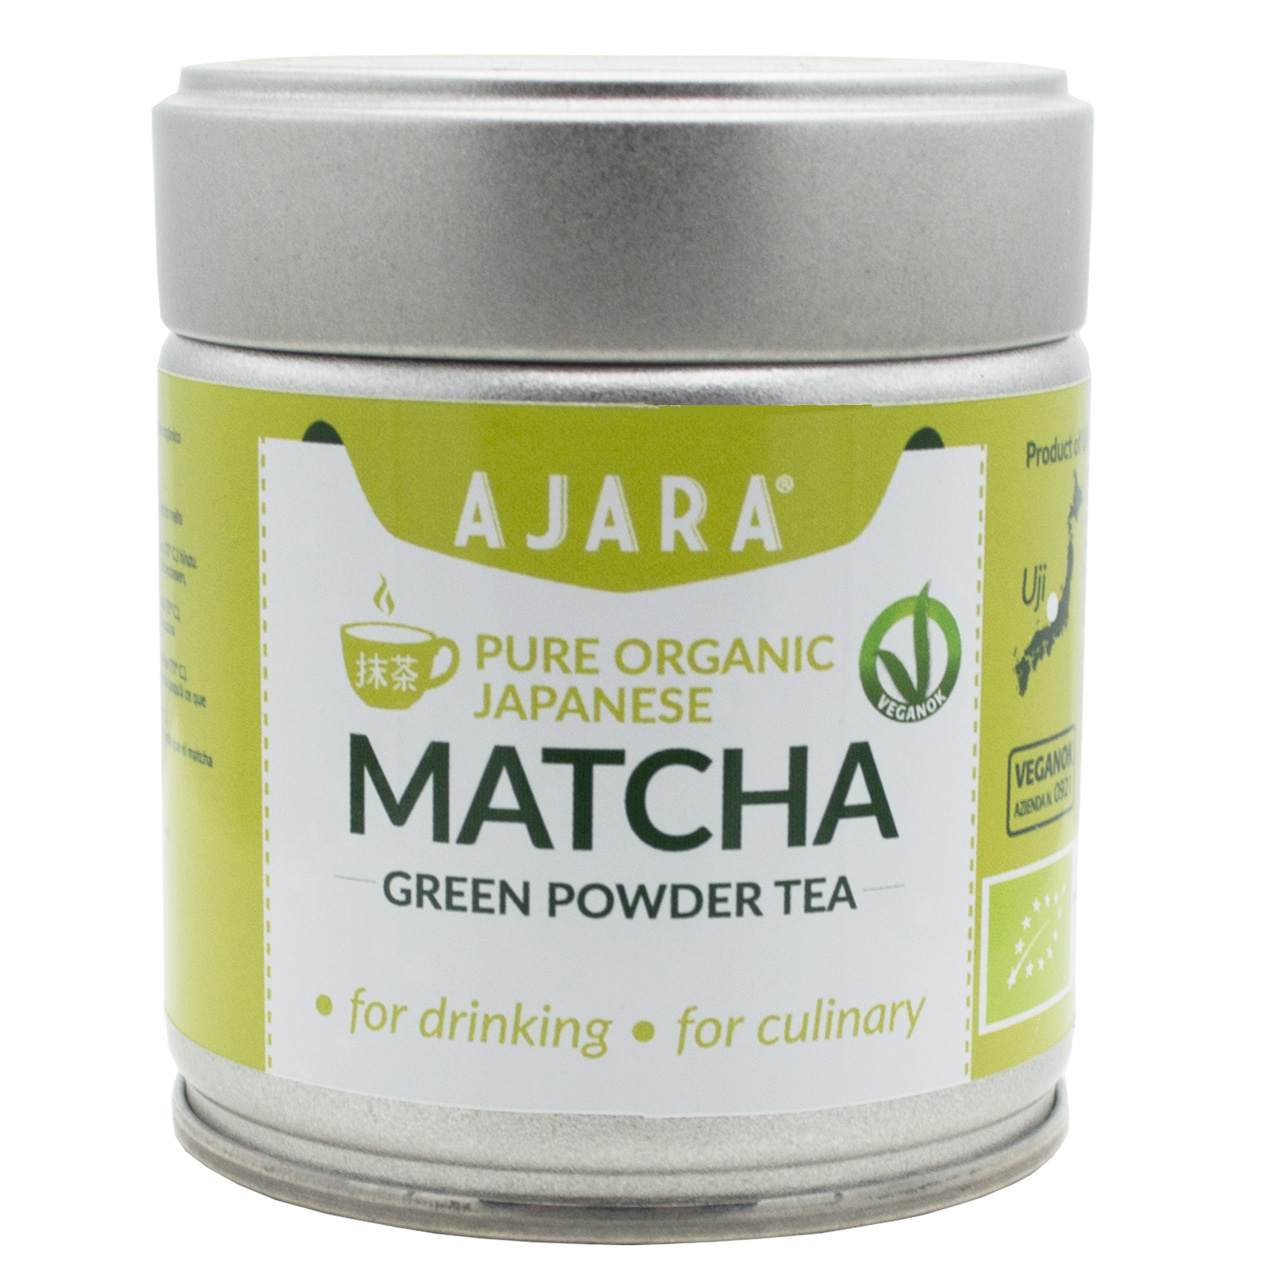 Matcha to drink